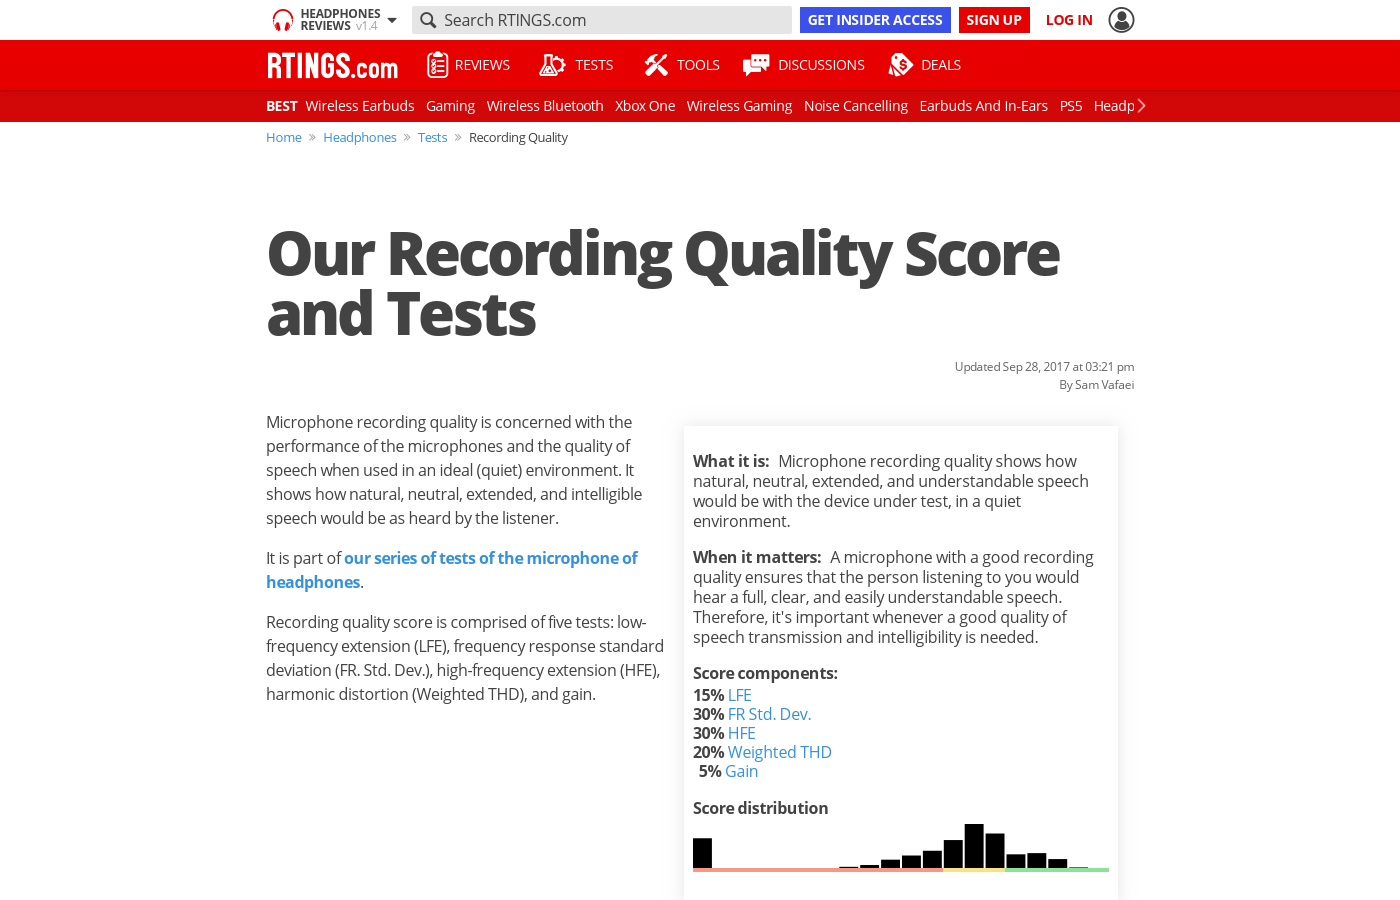 Our Recording Quality Score and Tests - RTINGS.com